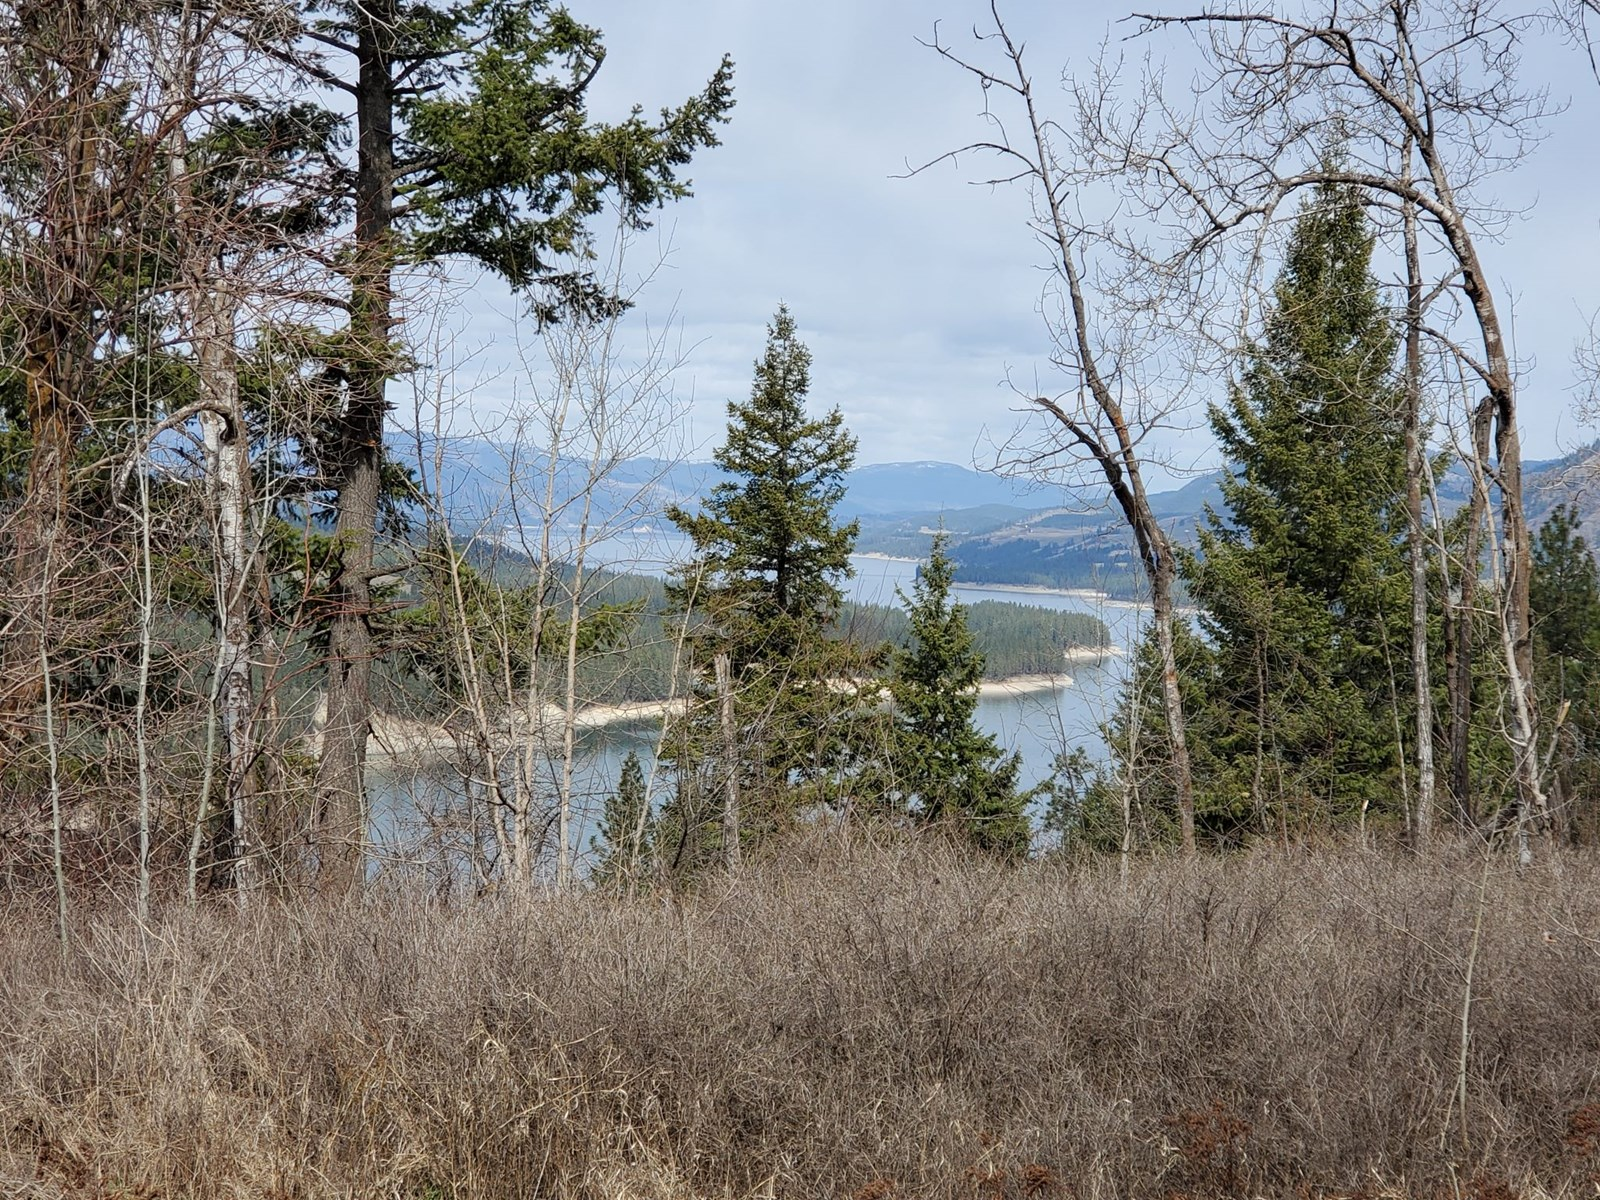 42 Acres of Recreational/Hunting Property with Lake Views